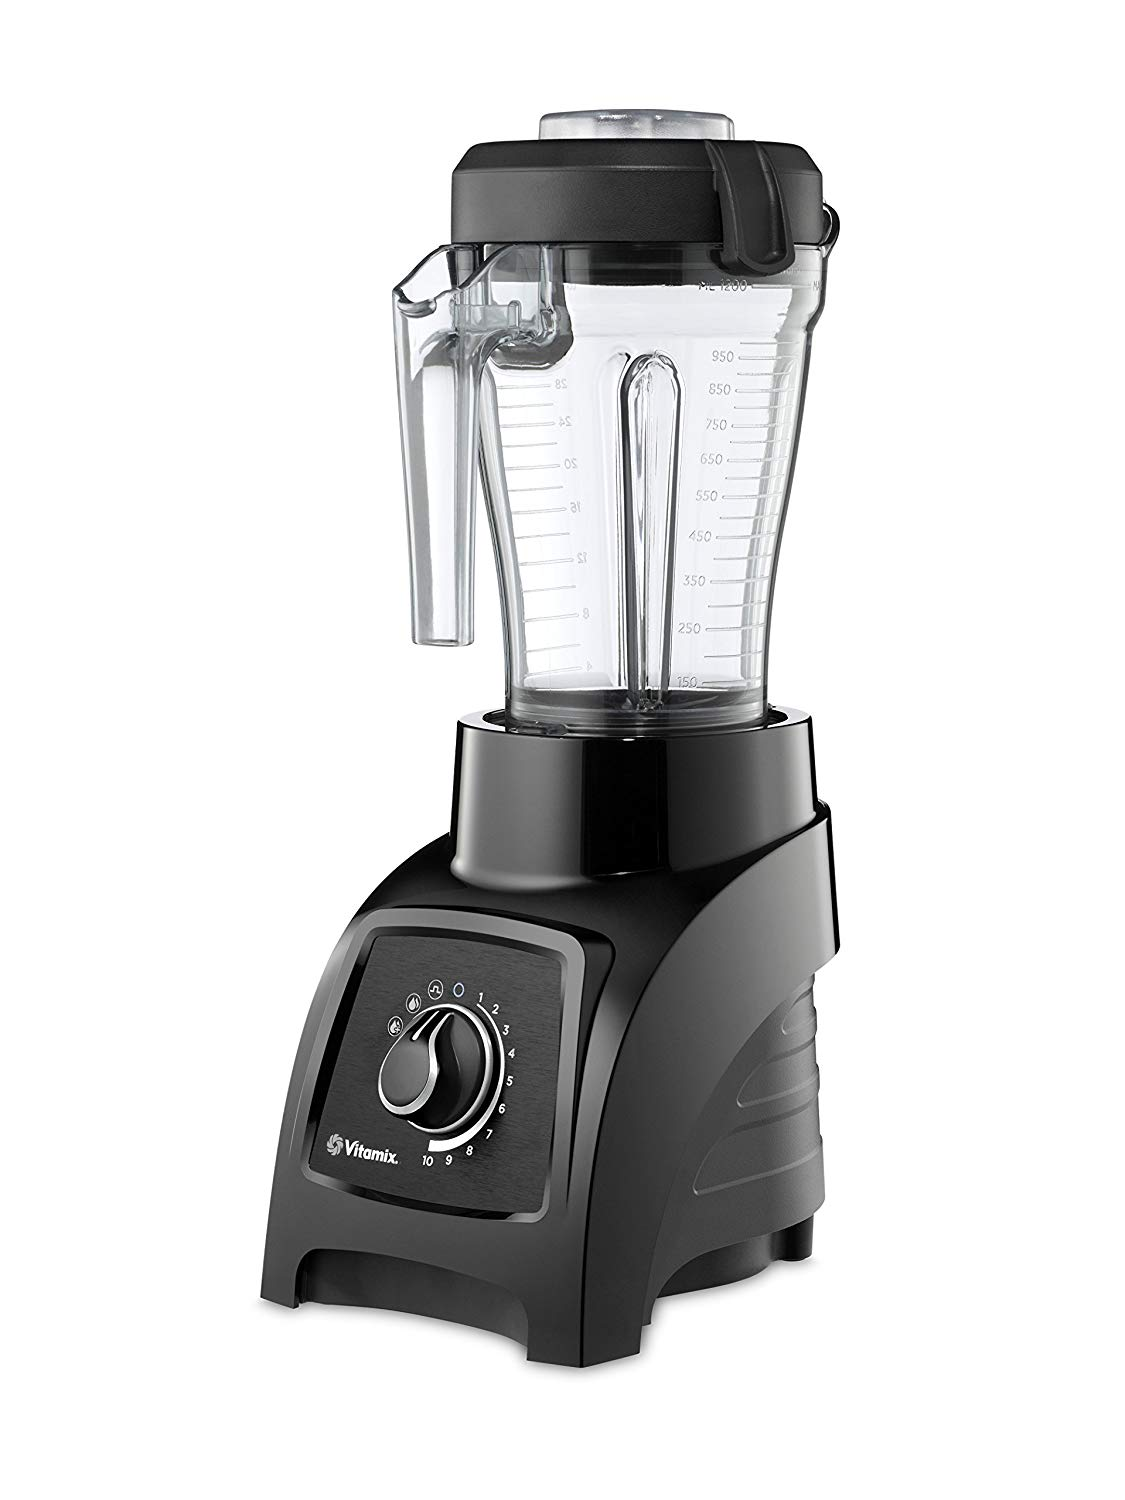 Vitamix Single Serve Blender - This is the perfect apartment blender! As powerful as a standard Vitamix, but small enough for smaller spaces.